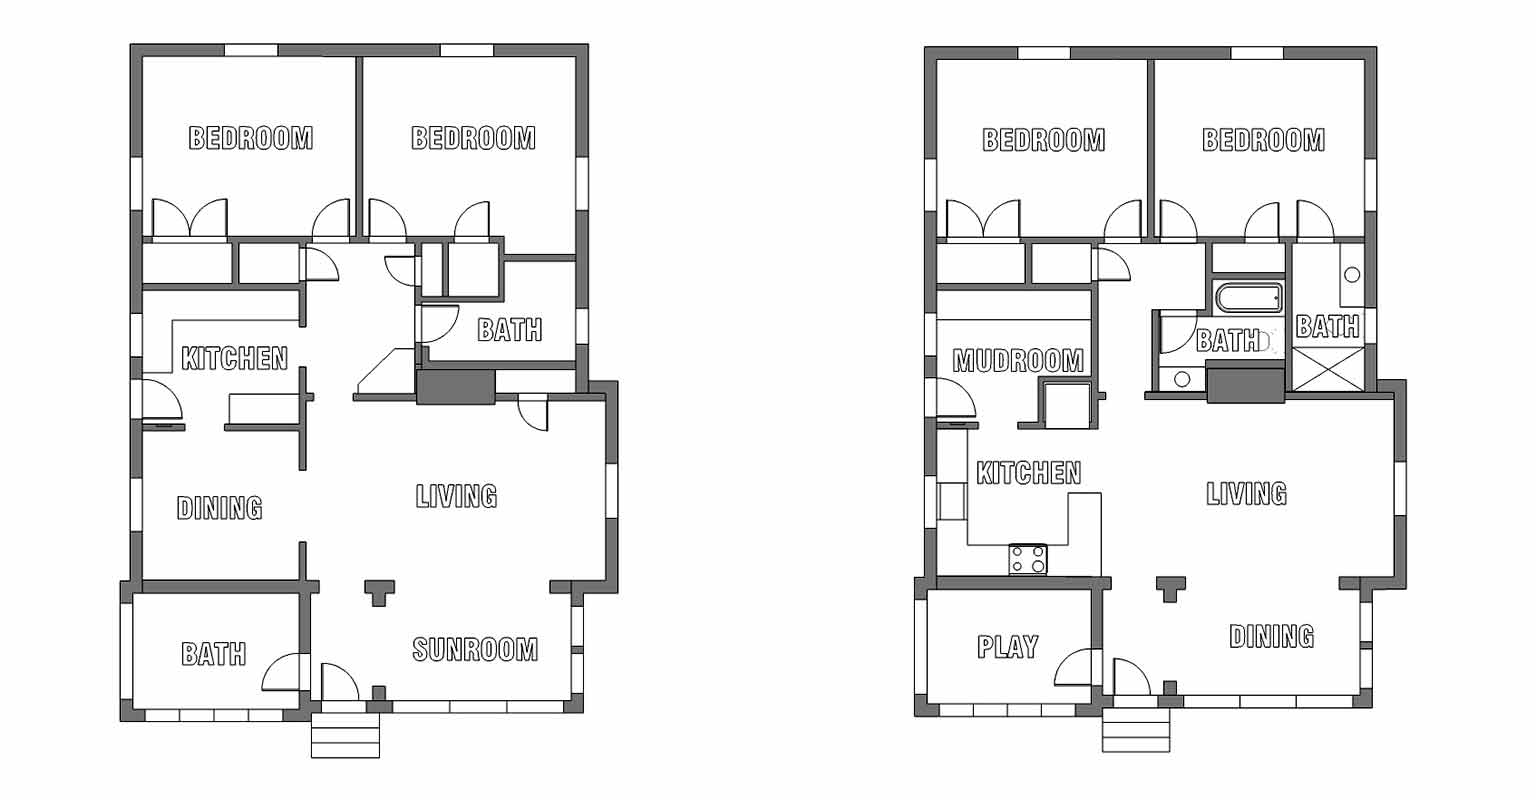 Original Floor Plan And Floor Plan For Phase One Renovation